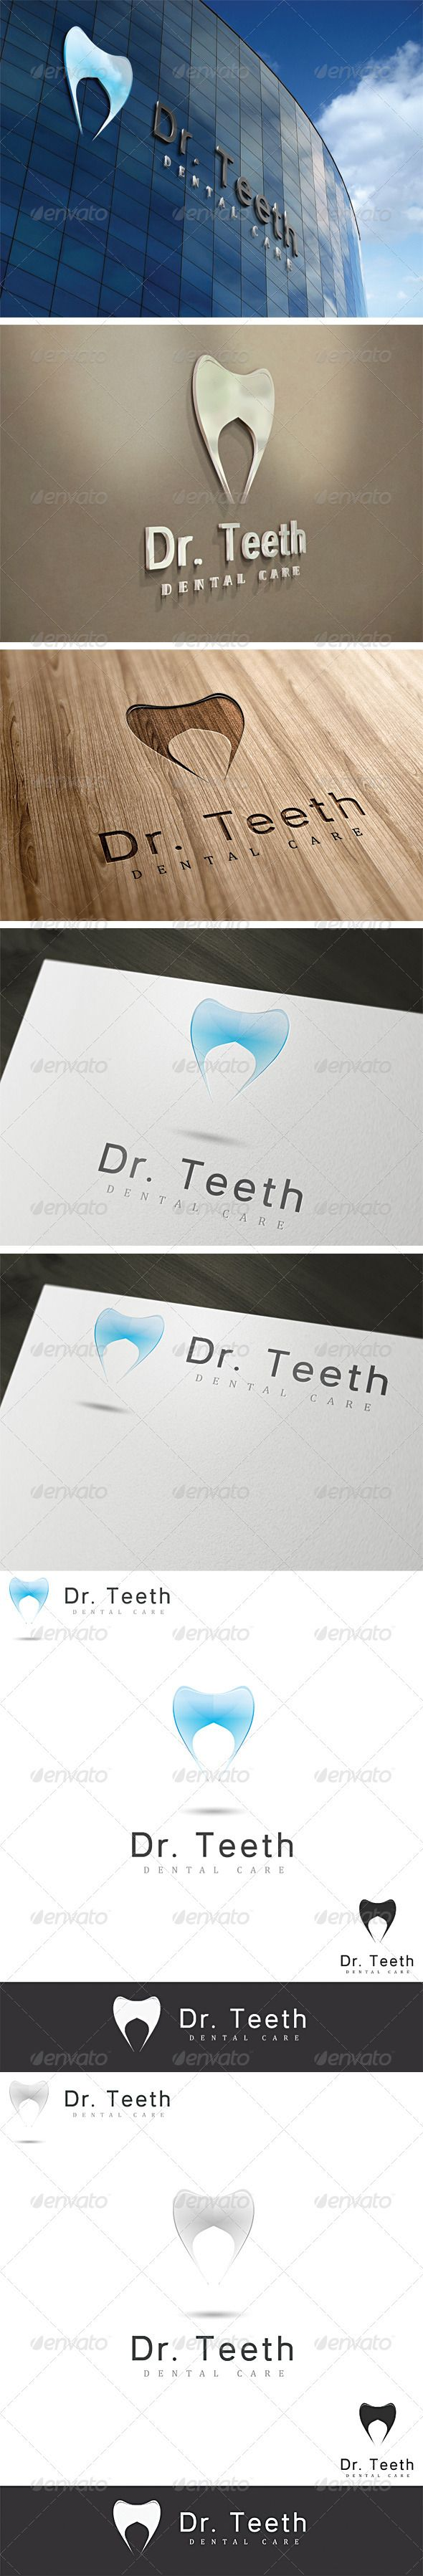 Dr. Teeth Dental Logo Template #GraphicRiver A modern fresh design, perfect for any dental business or company • Fully vector • Easy to edit text (link to fonts included in help file) • CMYK at 300DPI • AI and EPS files Note: The top 3D wall signs are for preview only should you need any further assistance, don't hesitate to contact me.